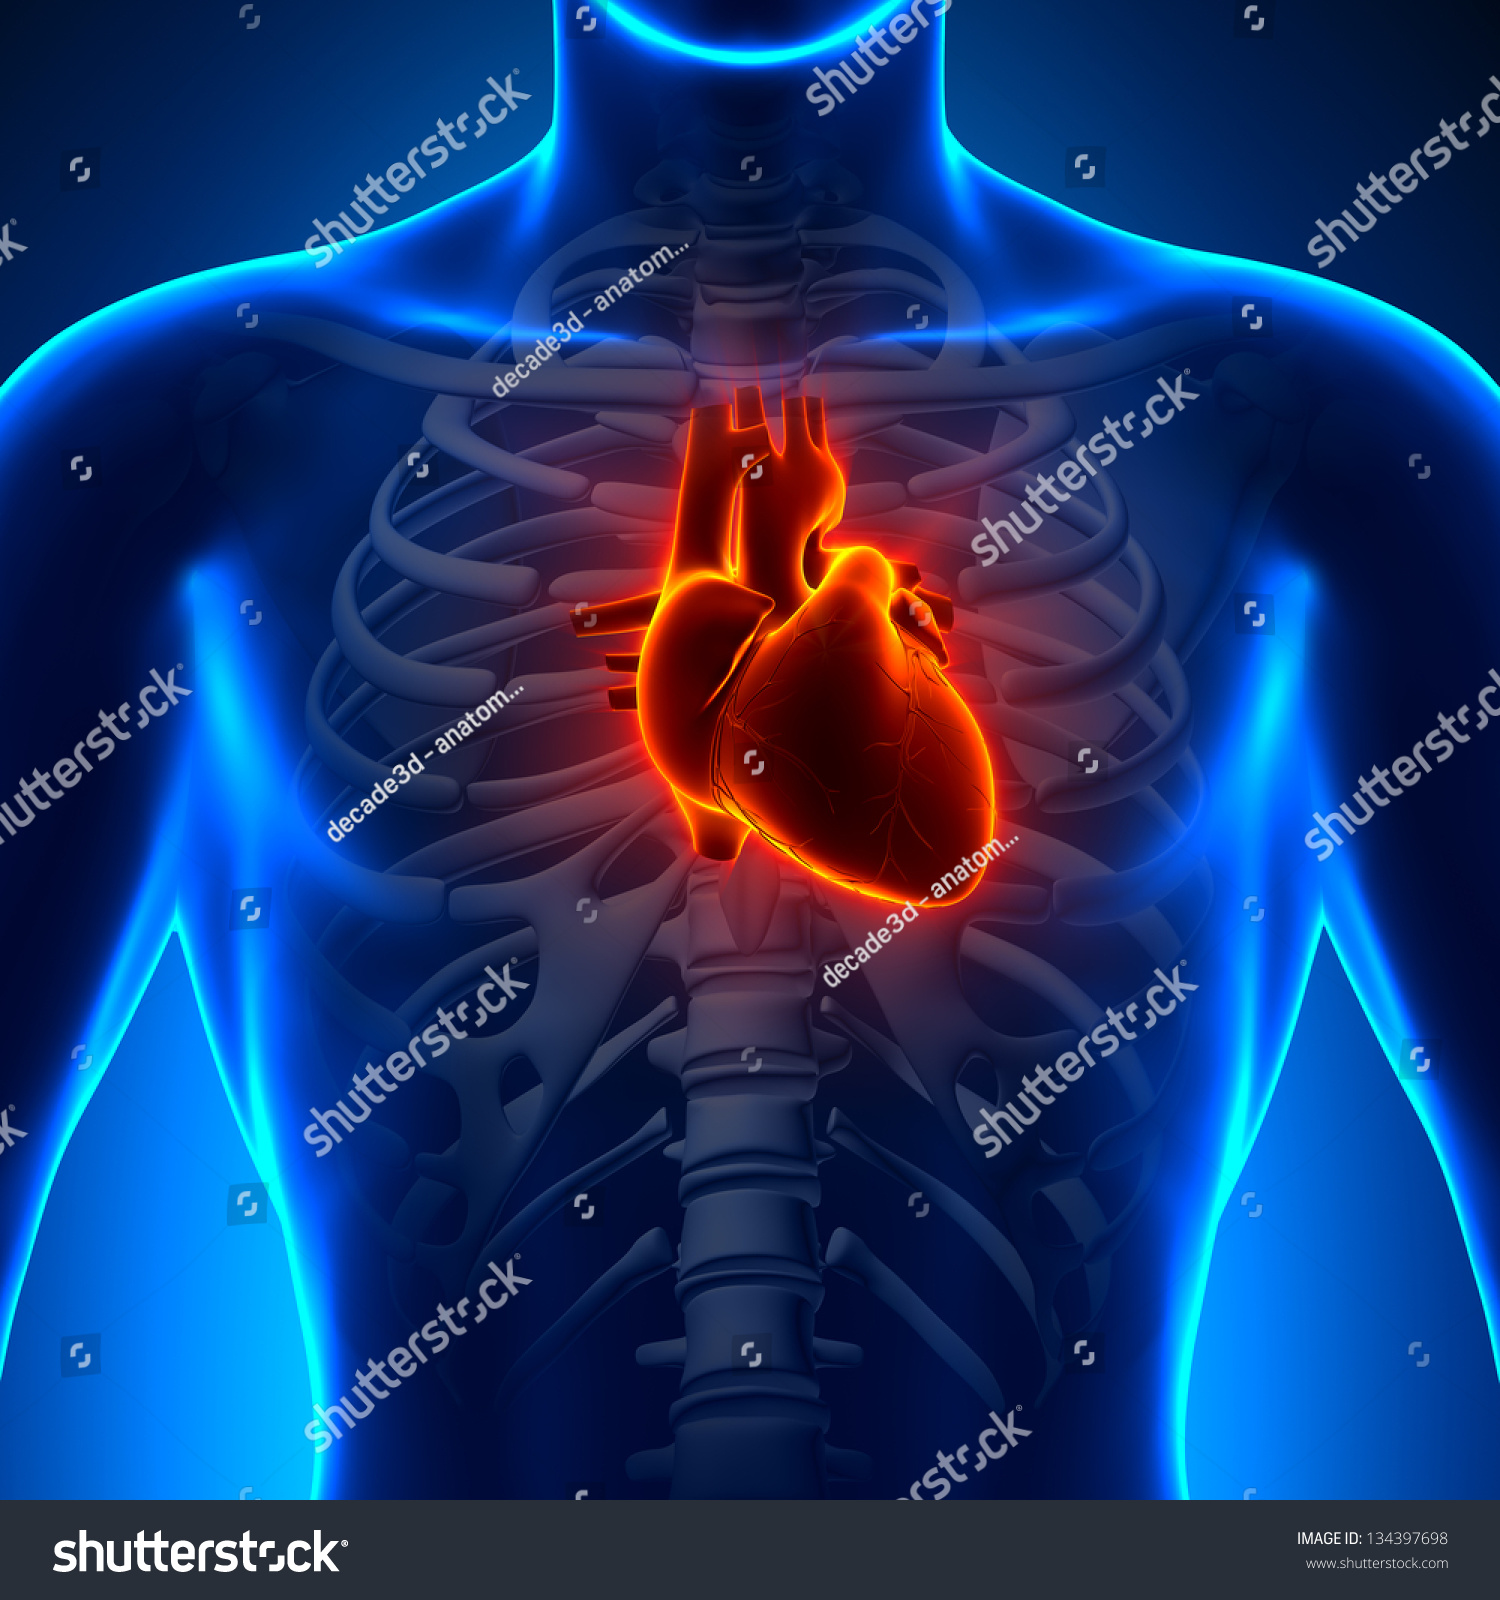 Royalty Free Stock Illustration Of Anatomy Heart Chest Medical Scan